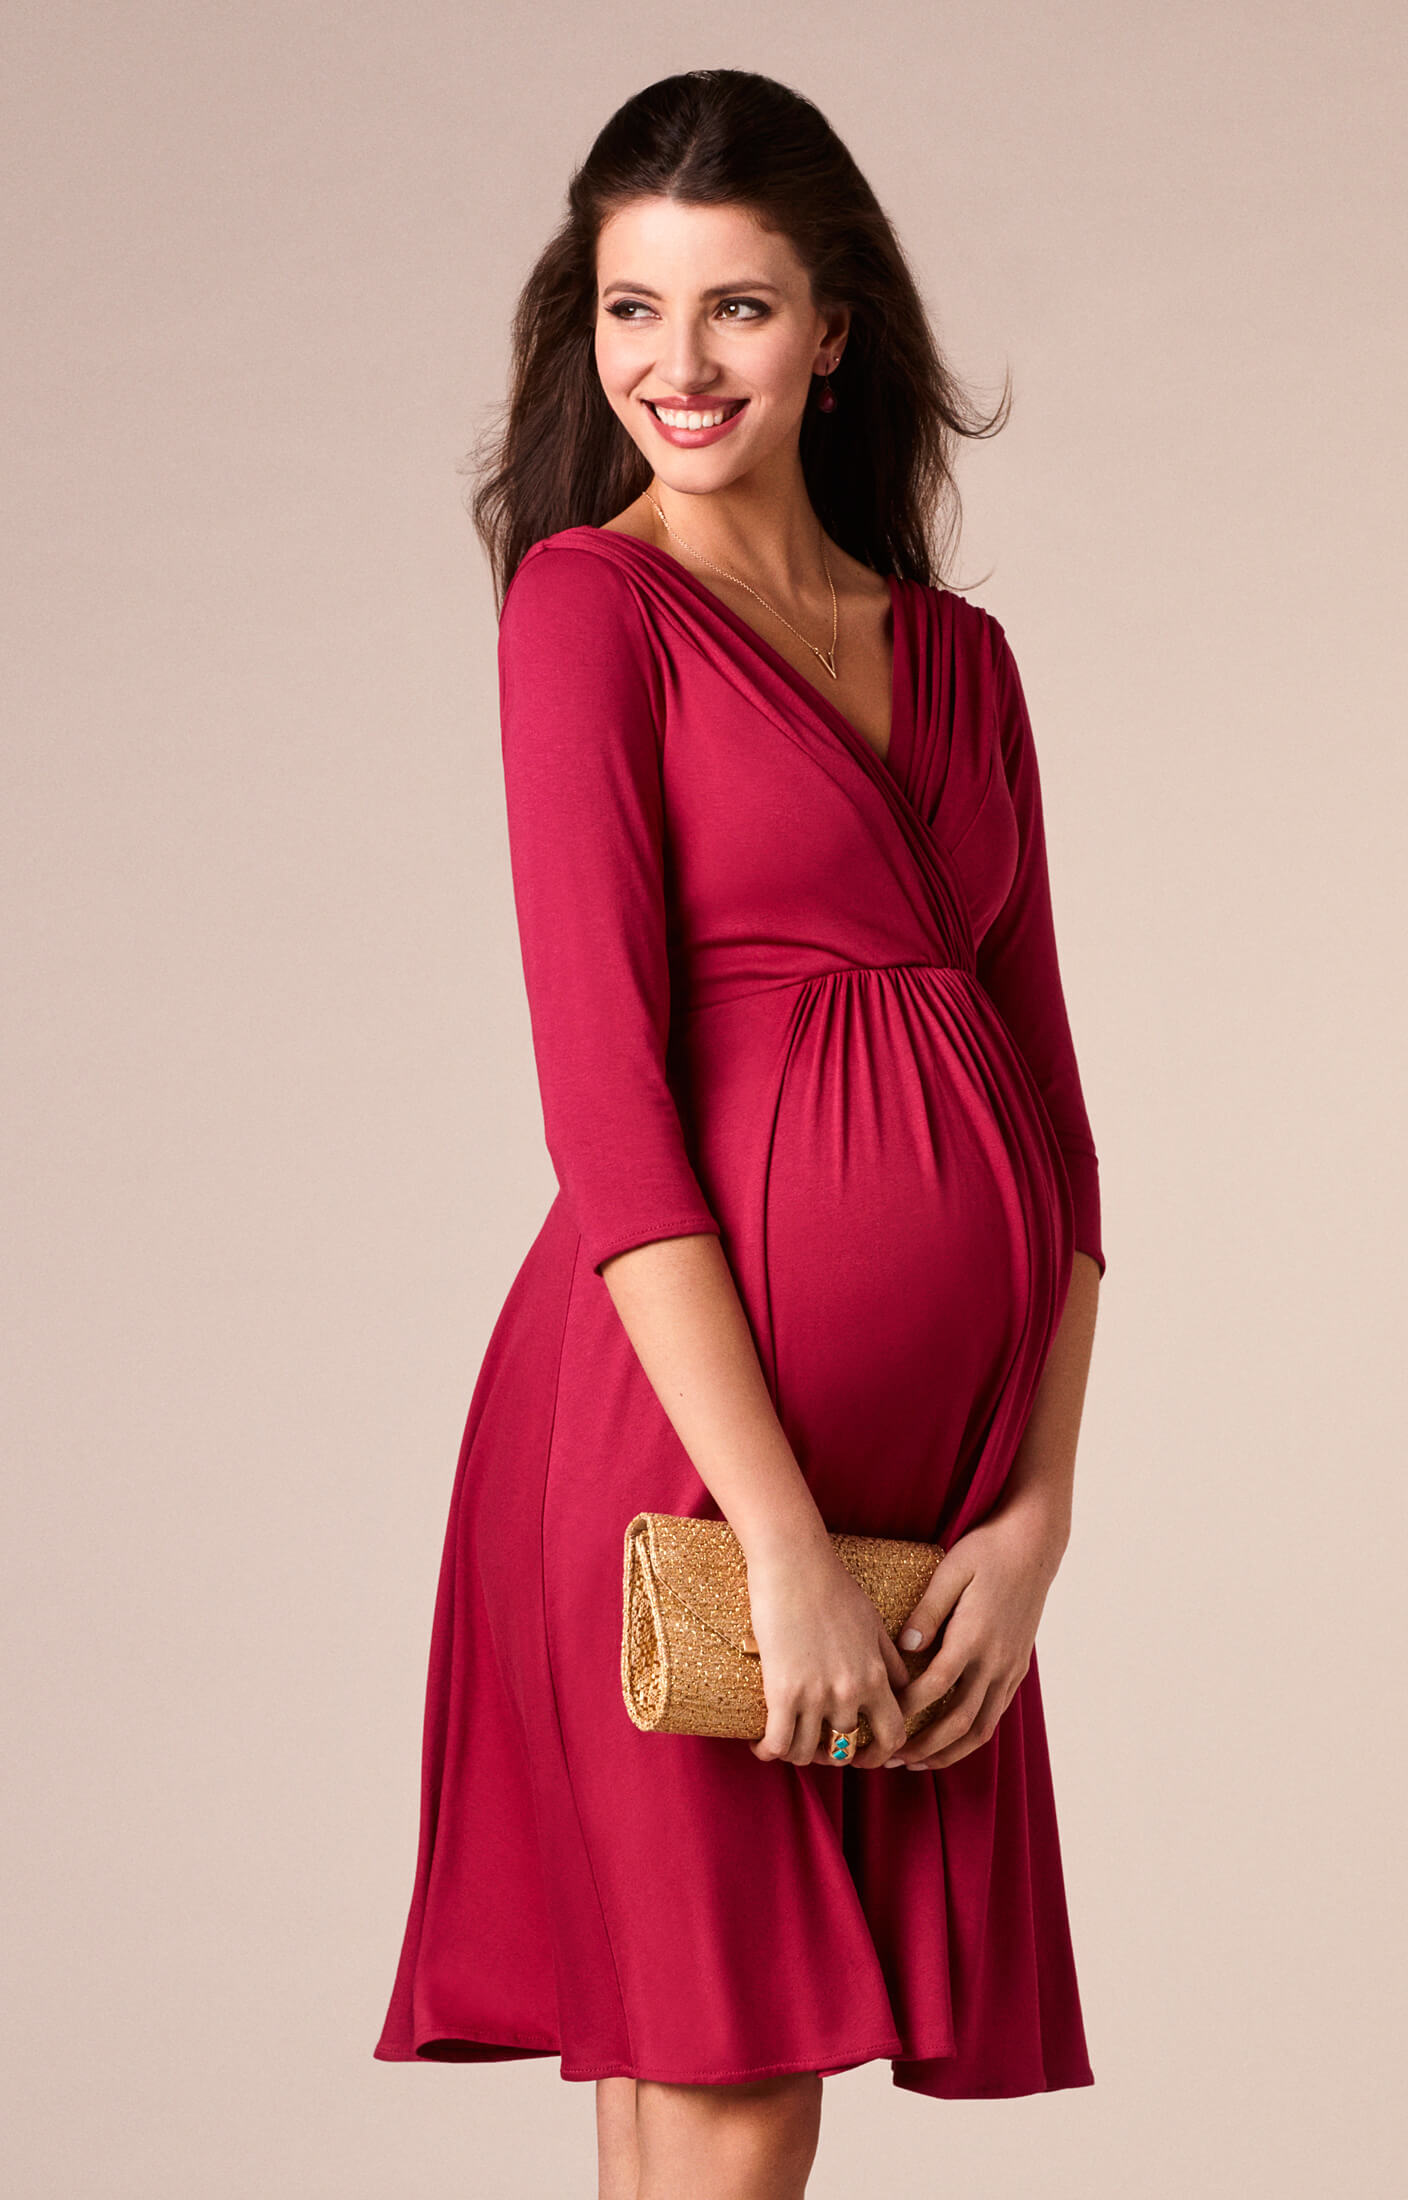 Willow maternity dress raspberry pink maternity wedding dresses willow maternity dress raspberry pink by tiffany rose ombrellifo Gallery